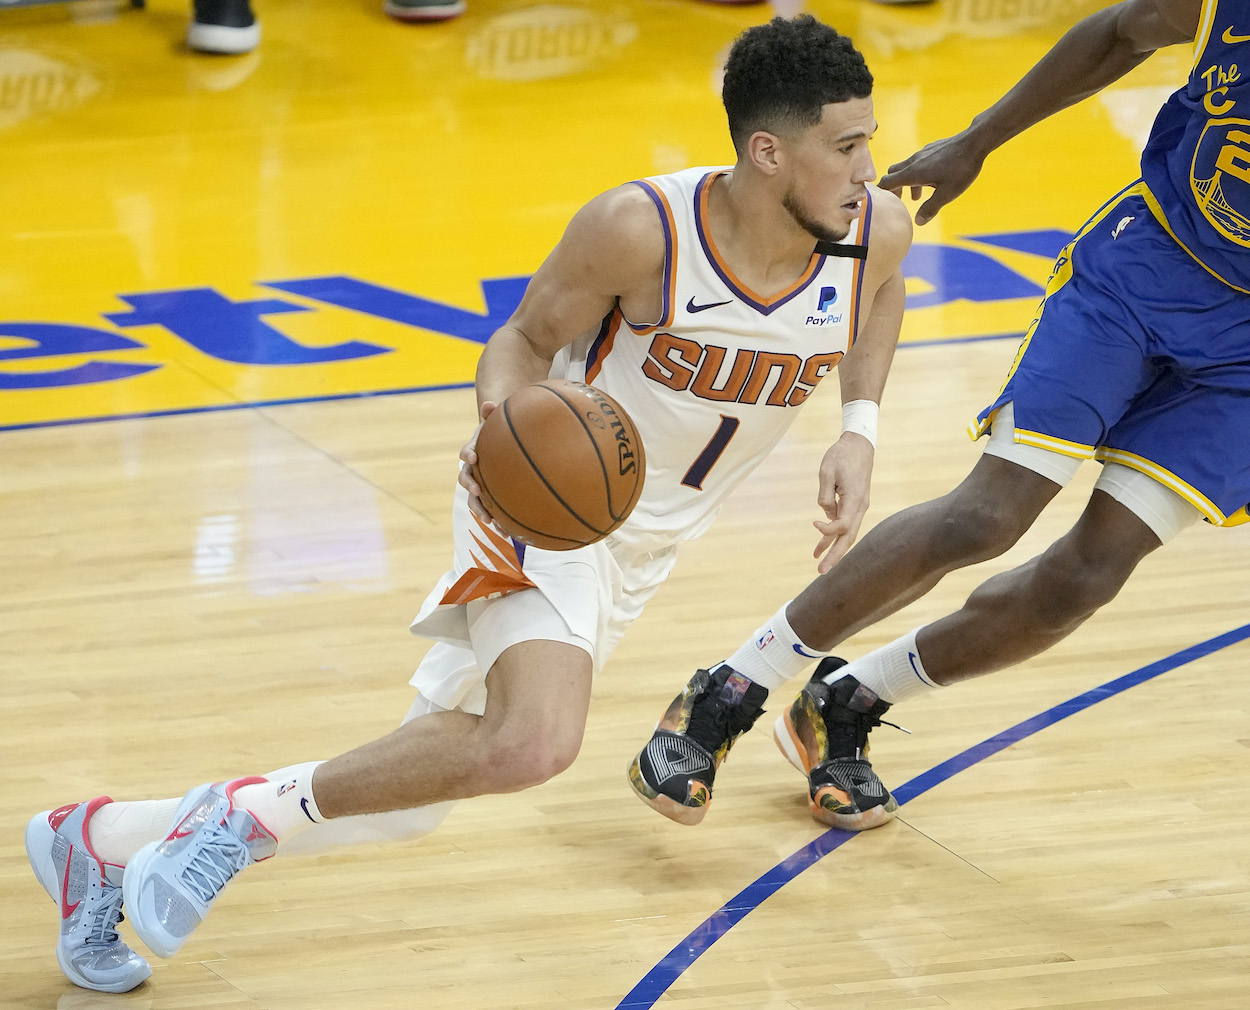 Devin Booker Credits Having a Basketball Legend 'Right in Your Backyard' For His Success